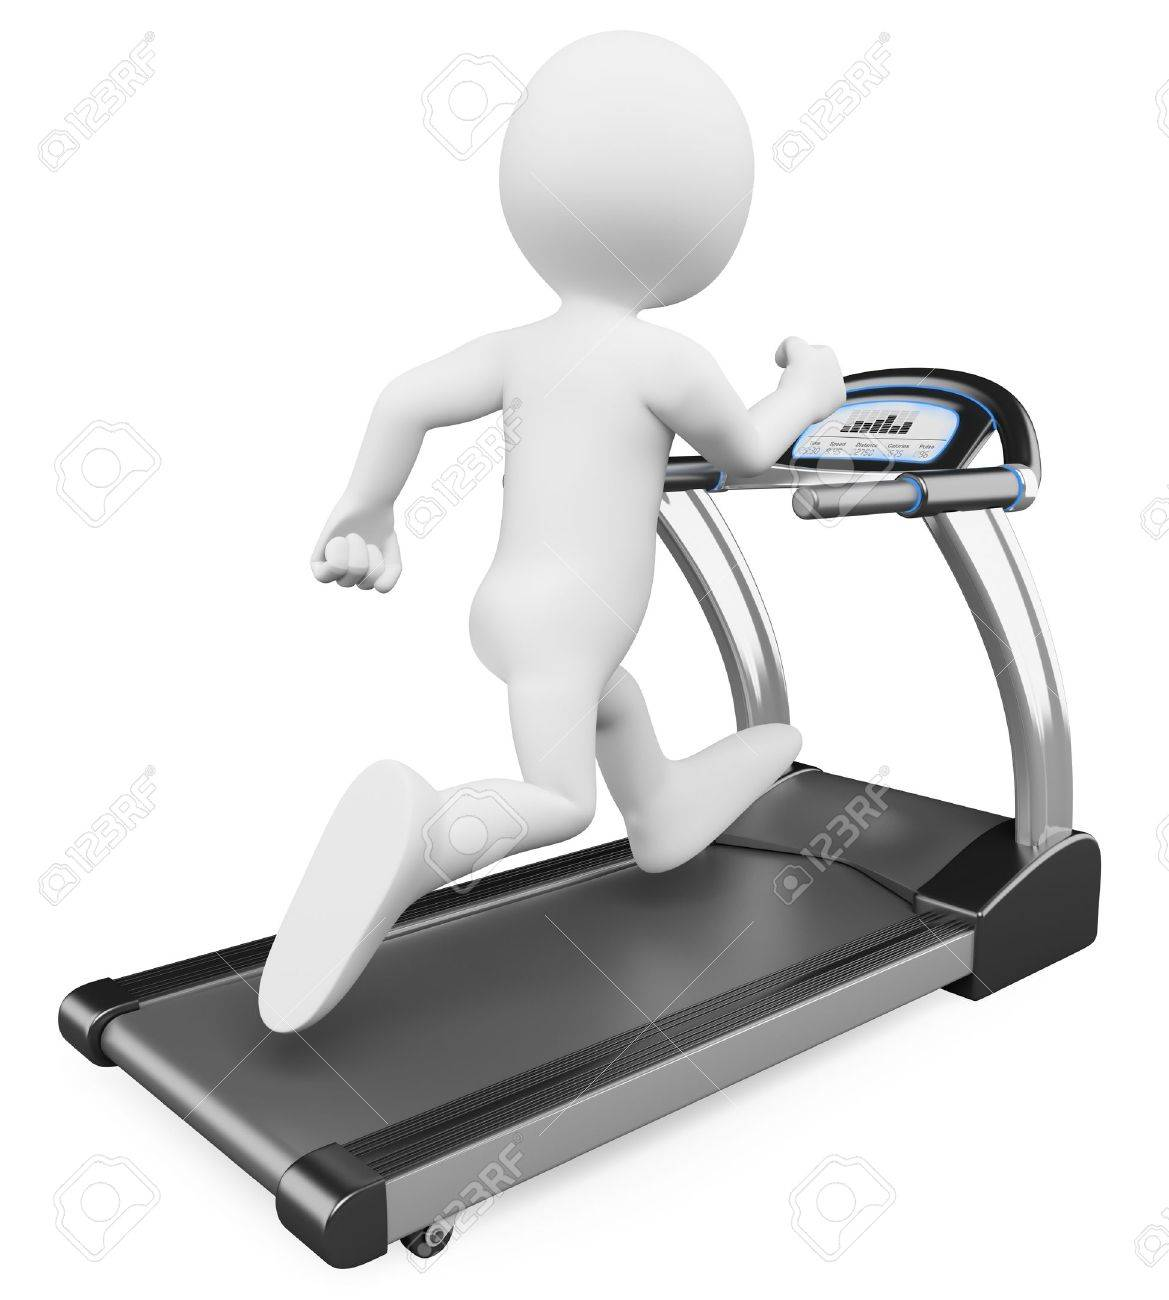 3d white person running on a treadmill. 3d image. Isolated white background. Stock Photo - 15783492